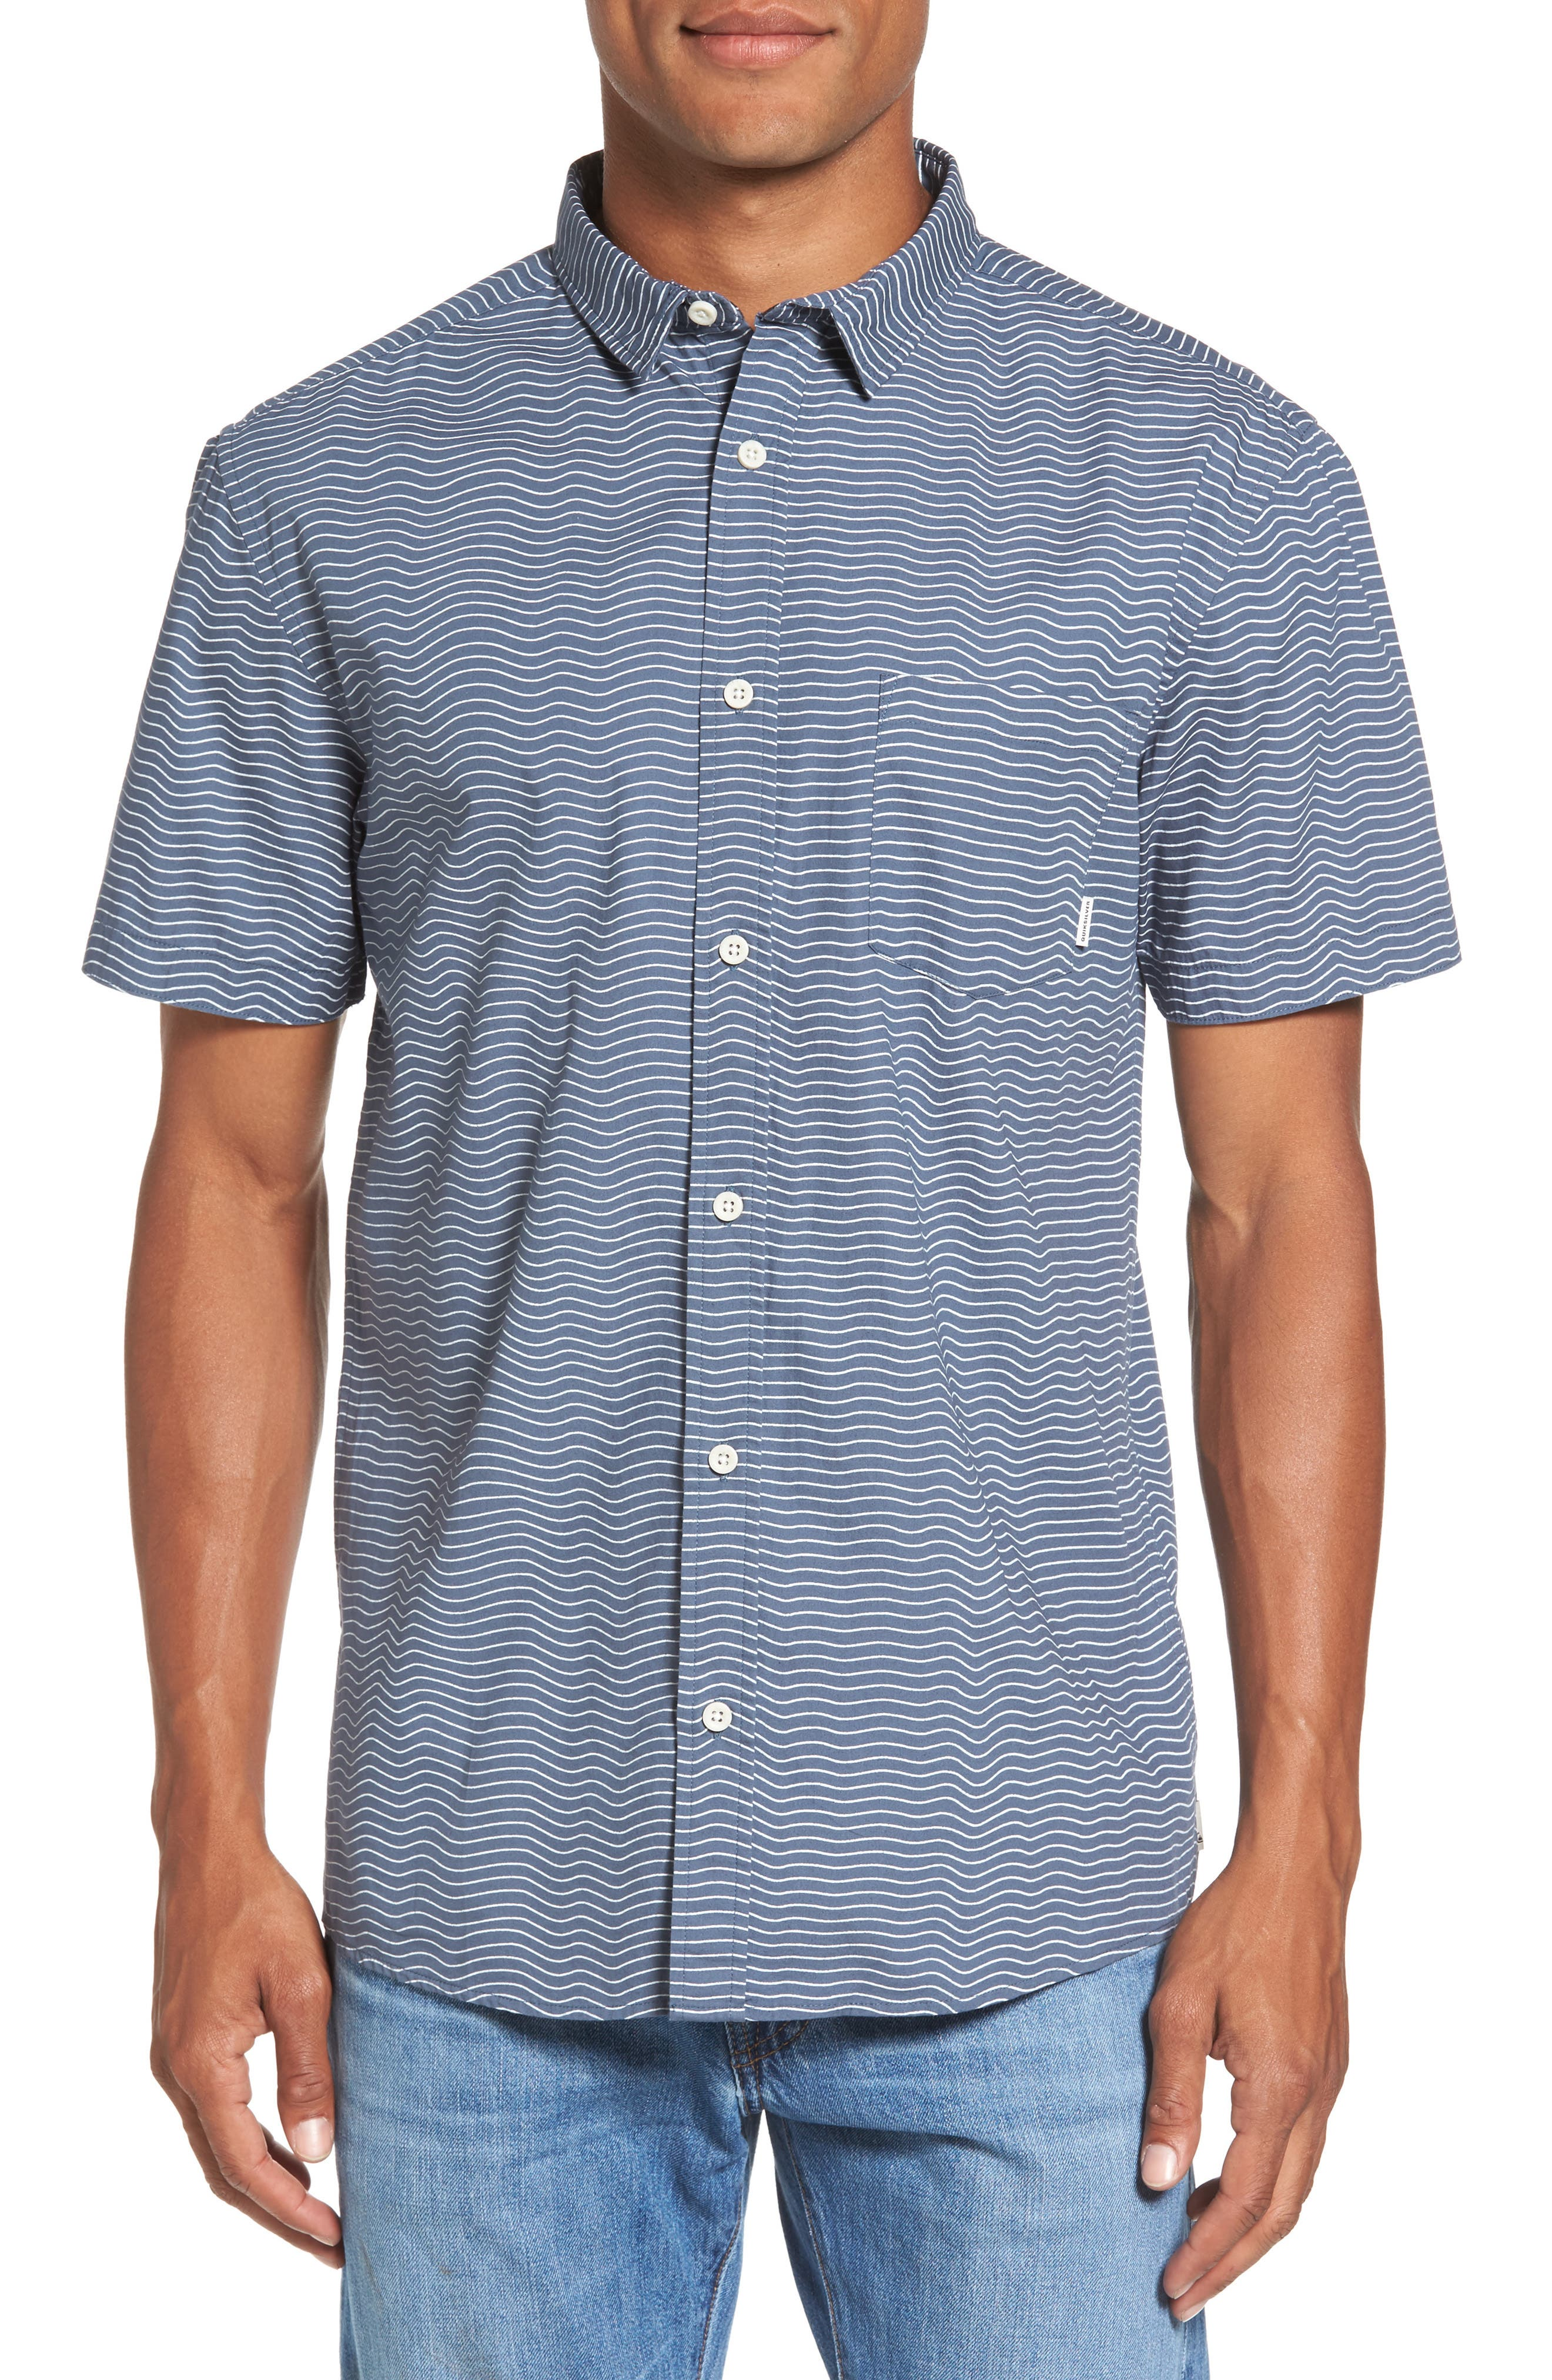 Heat Wave Stripe Shirt,                         Main,                         color, Blue